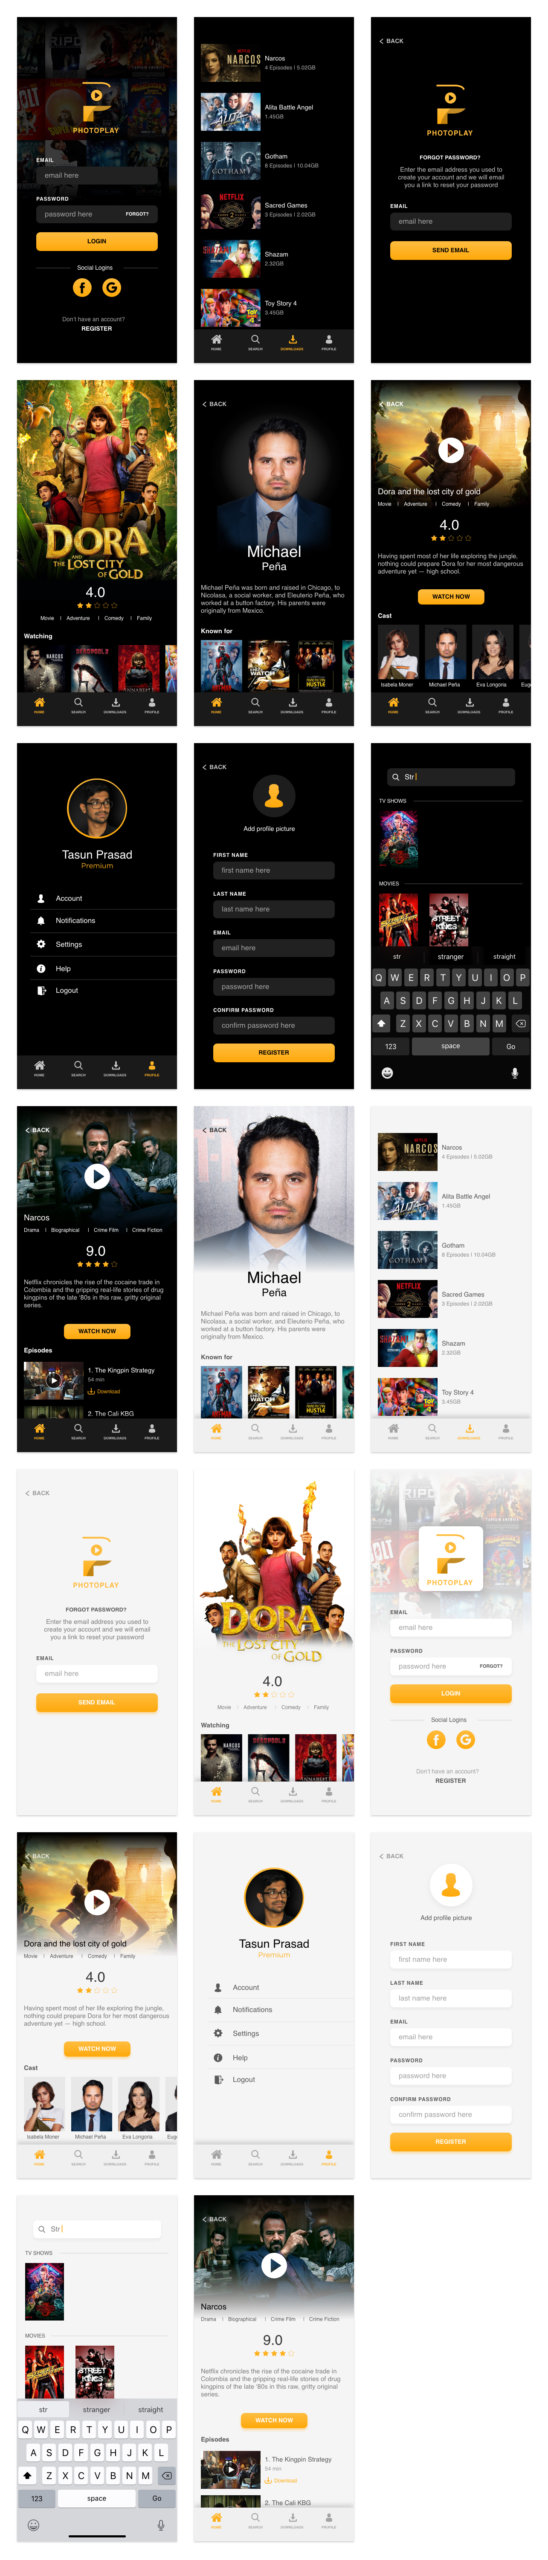 Photoplay Free UI Kit for Adobe XD from UIGarage